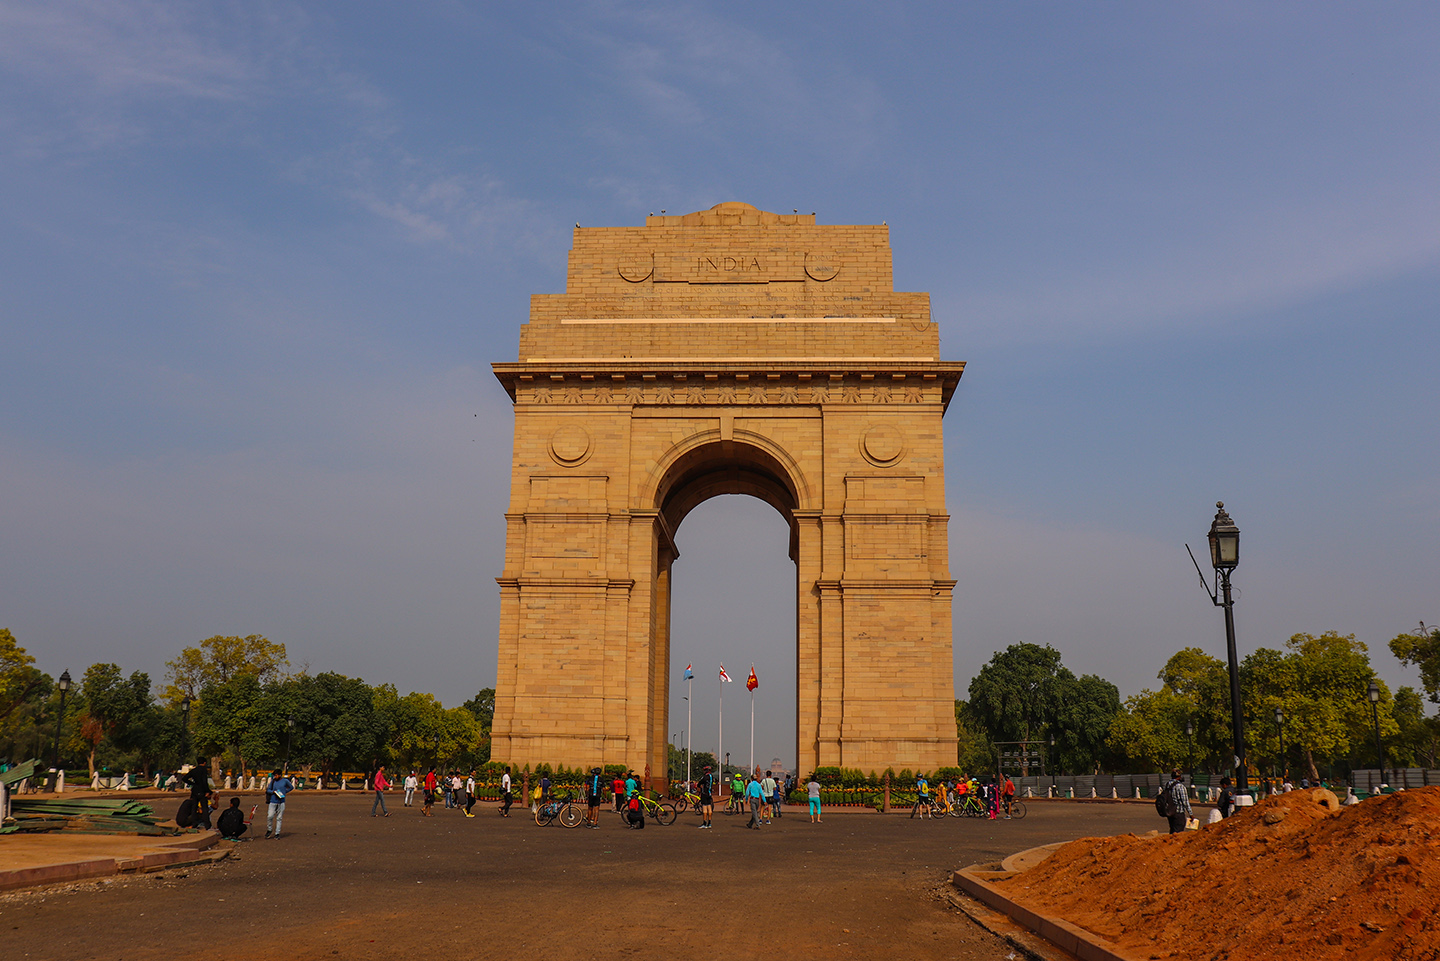 India Gate, New Delhi, Bahai House, Delhi monuments